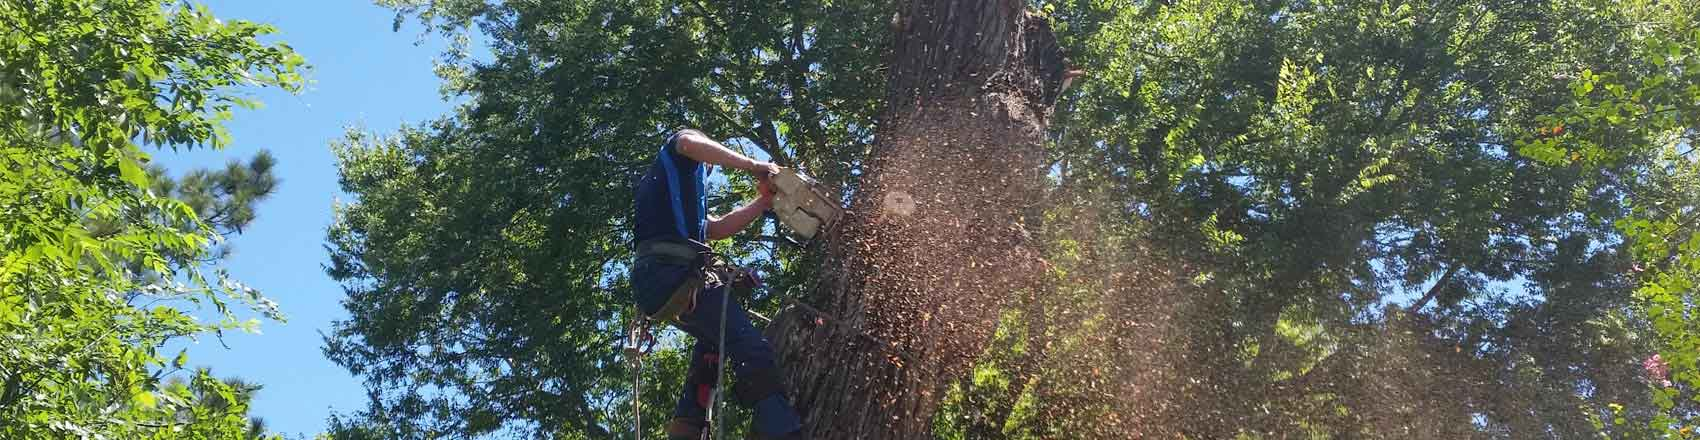 Tree Care Company Baton Rouge